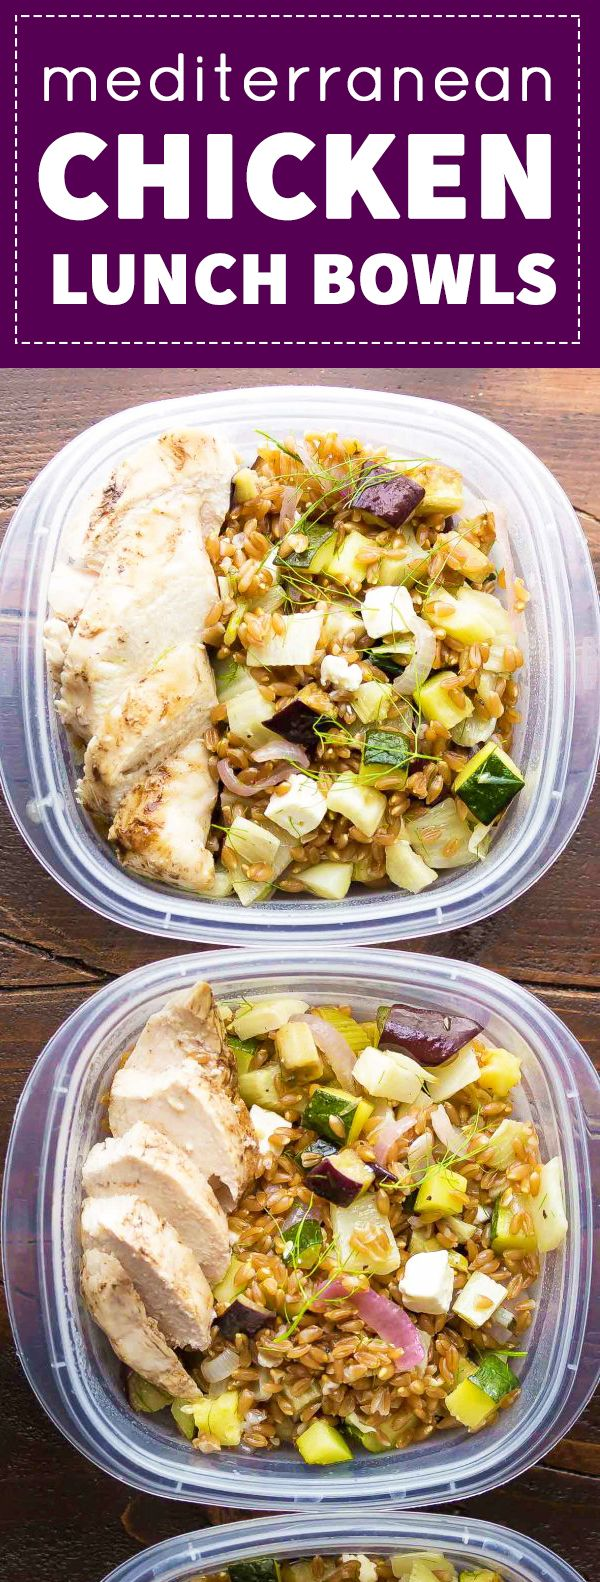 Make these Mediterranean Chicken & Farro Lunch Bowls and you'll have four healthy work lunches ready for the week.